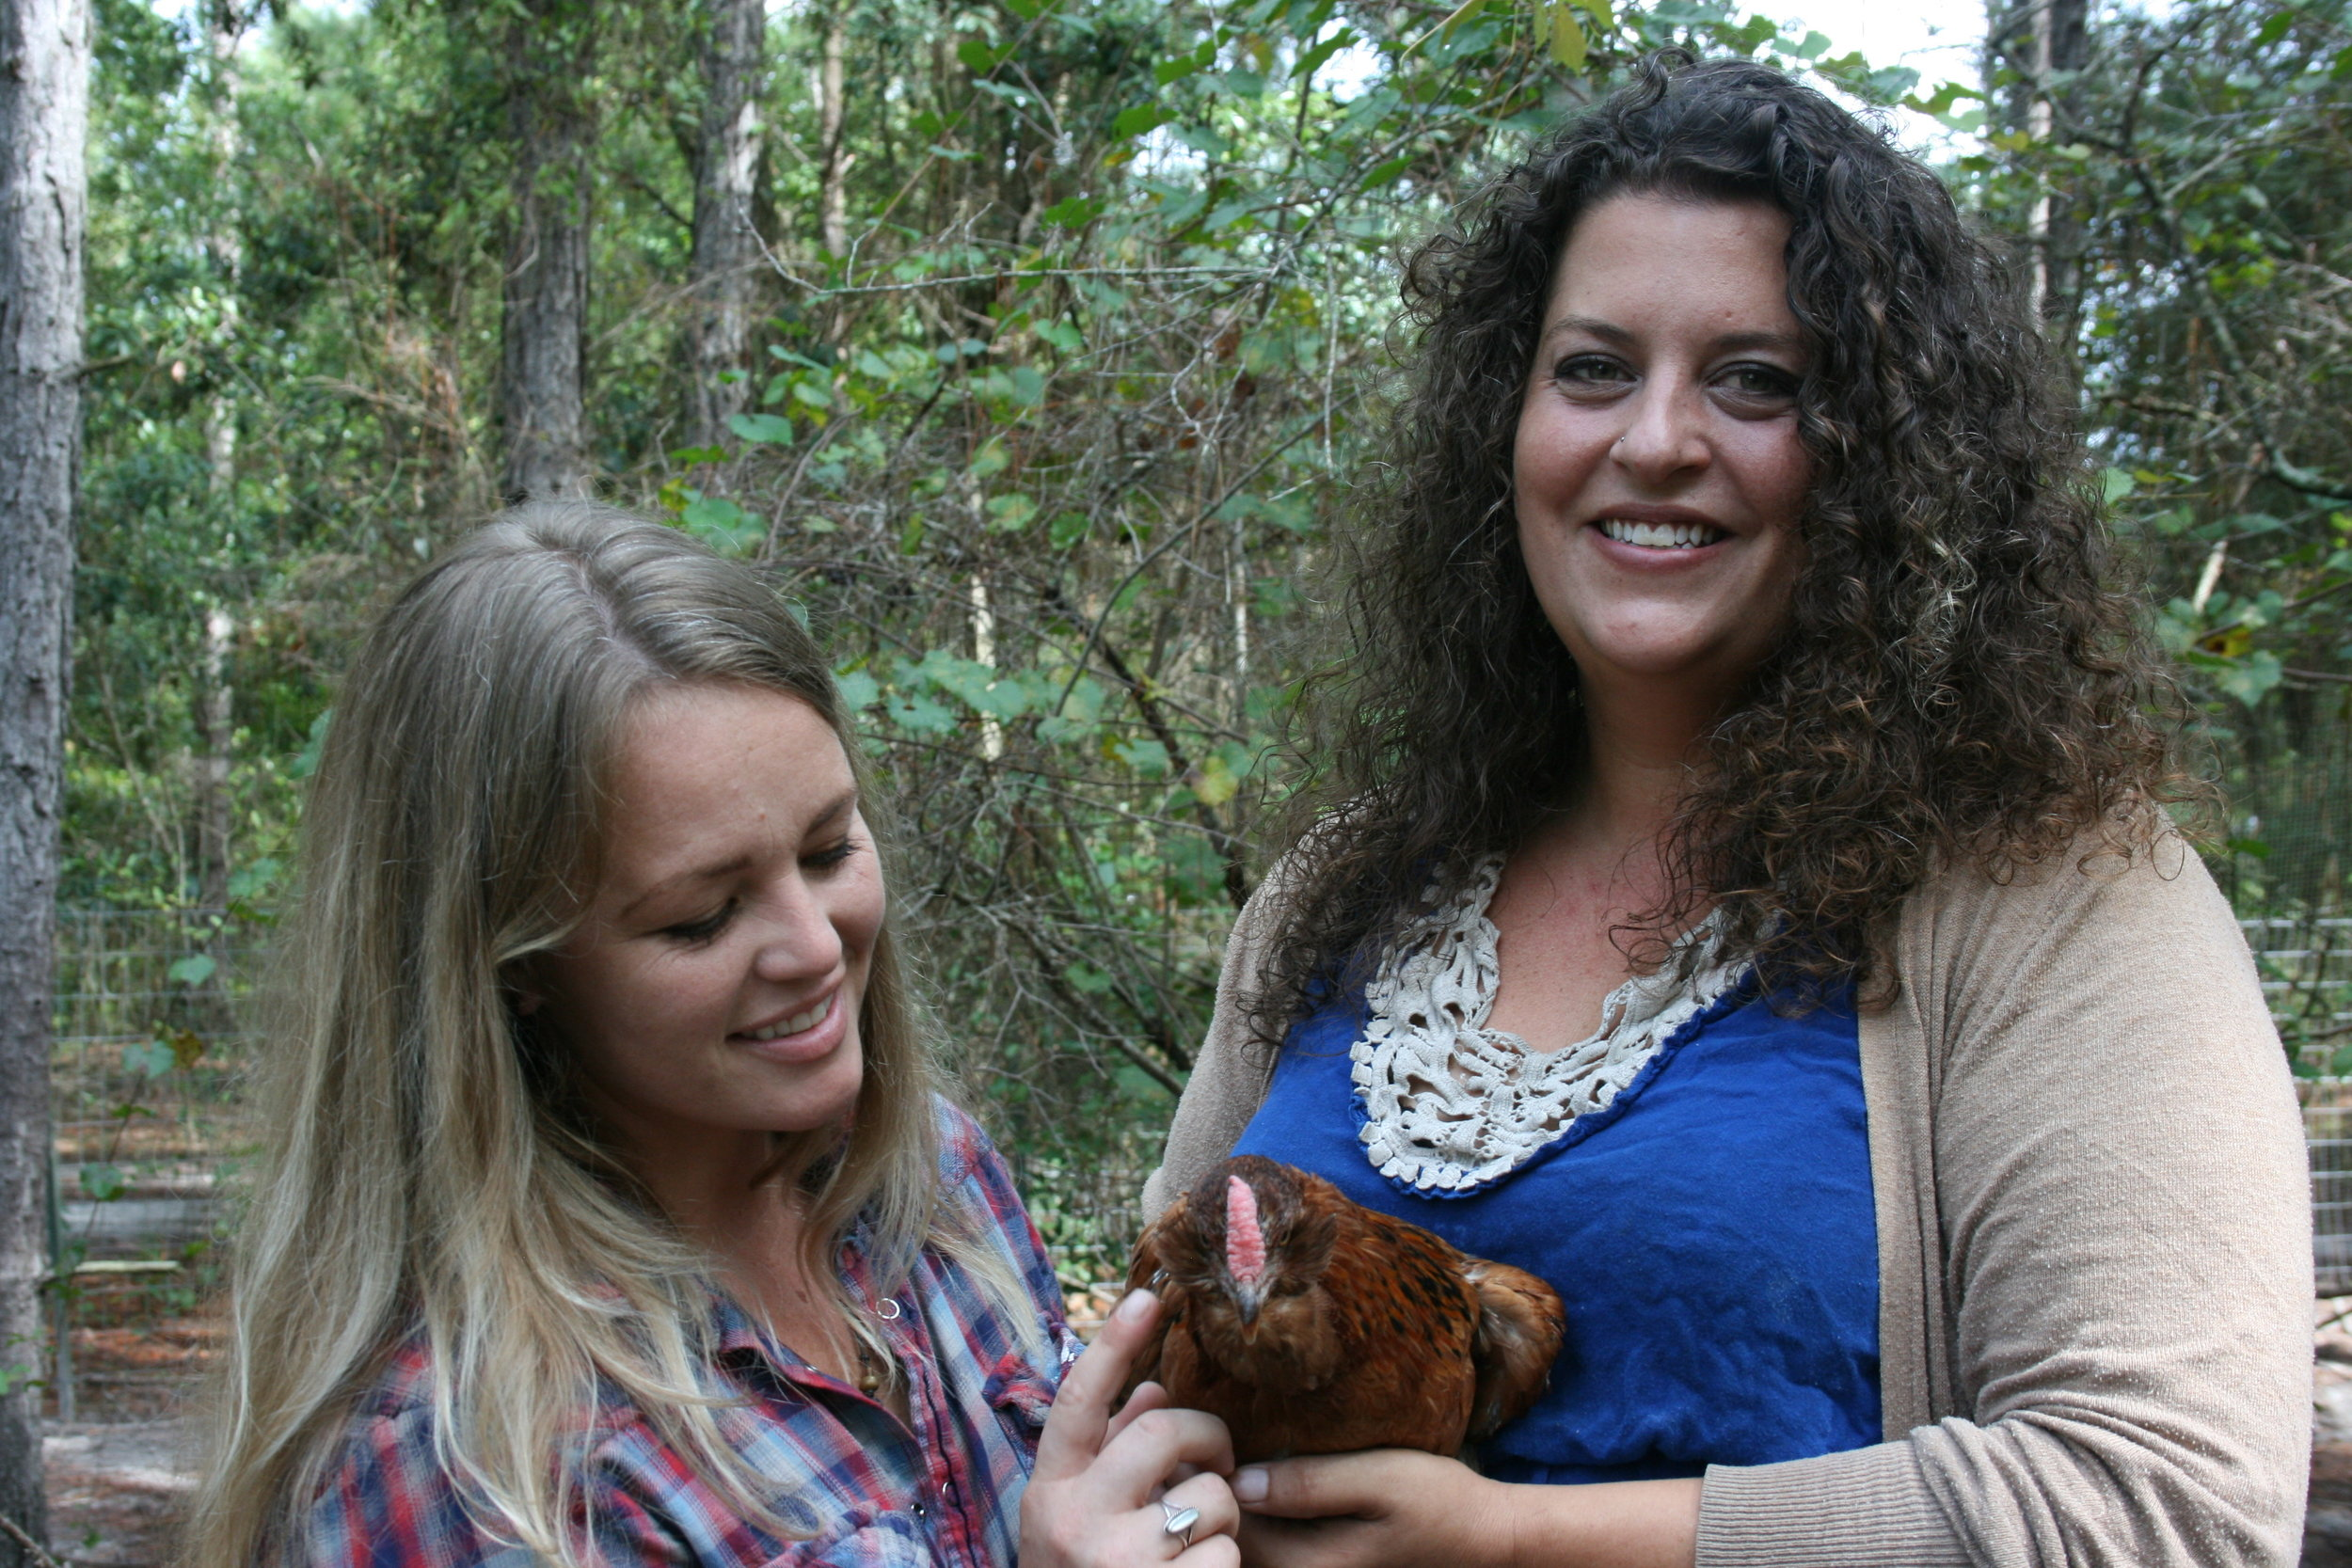 Goat farmers and chicken keepers extraordinaire, Jennifer Evitts and Swan Rubins of the Hairy Farmpit Girls.